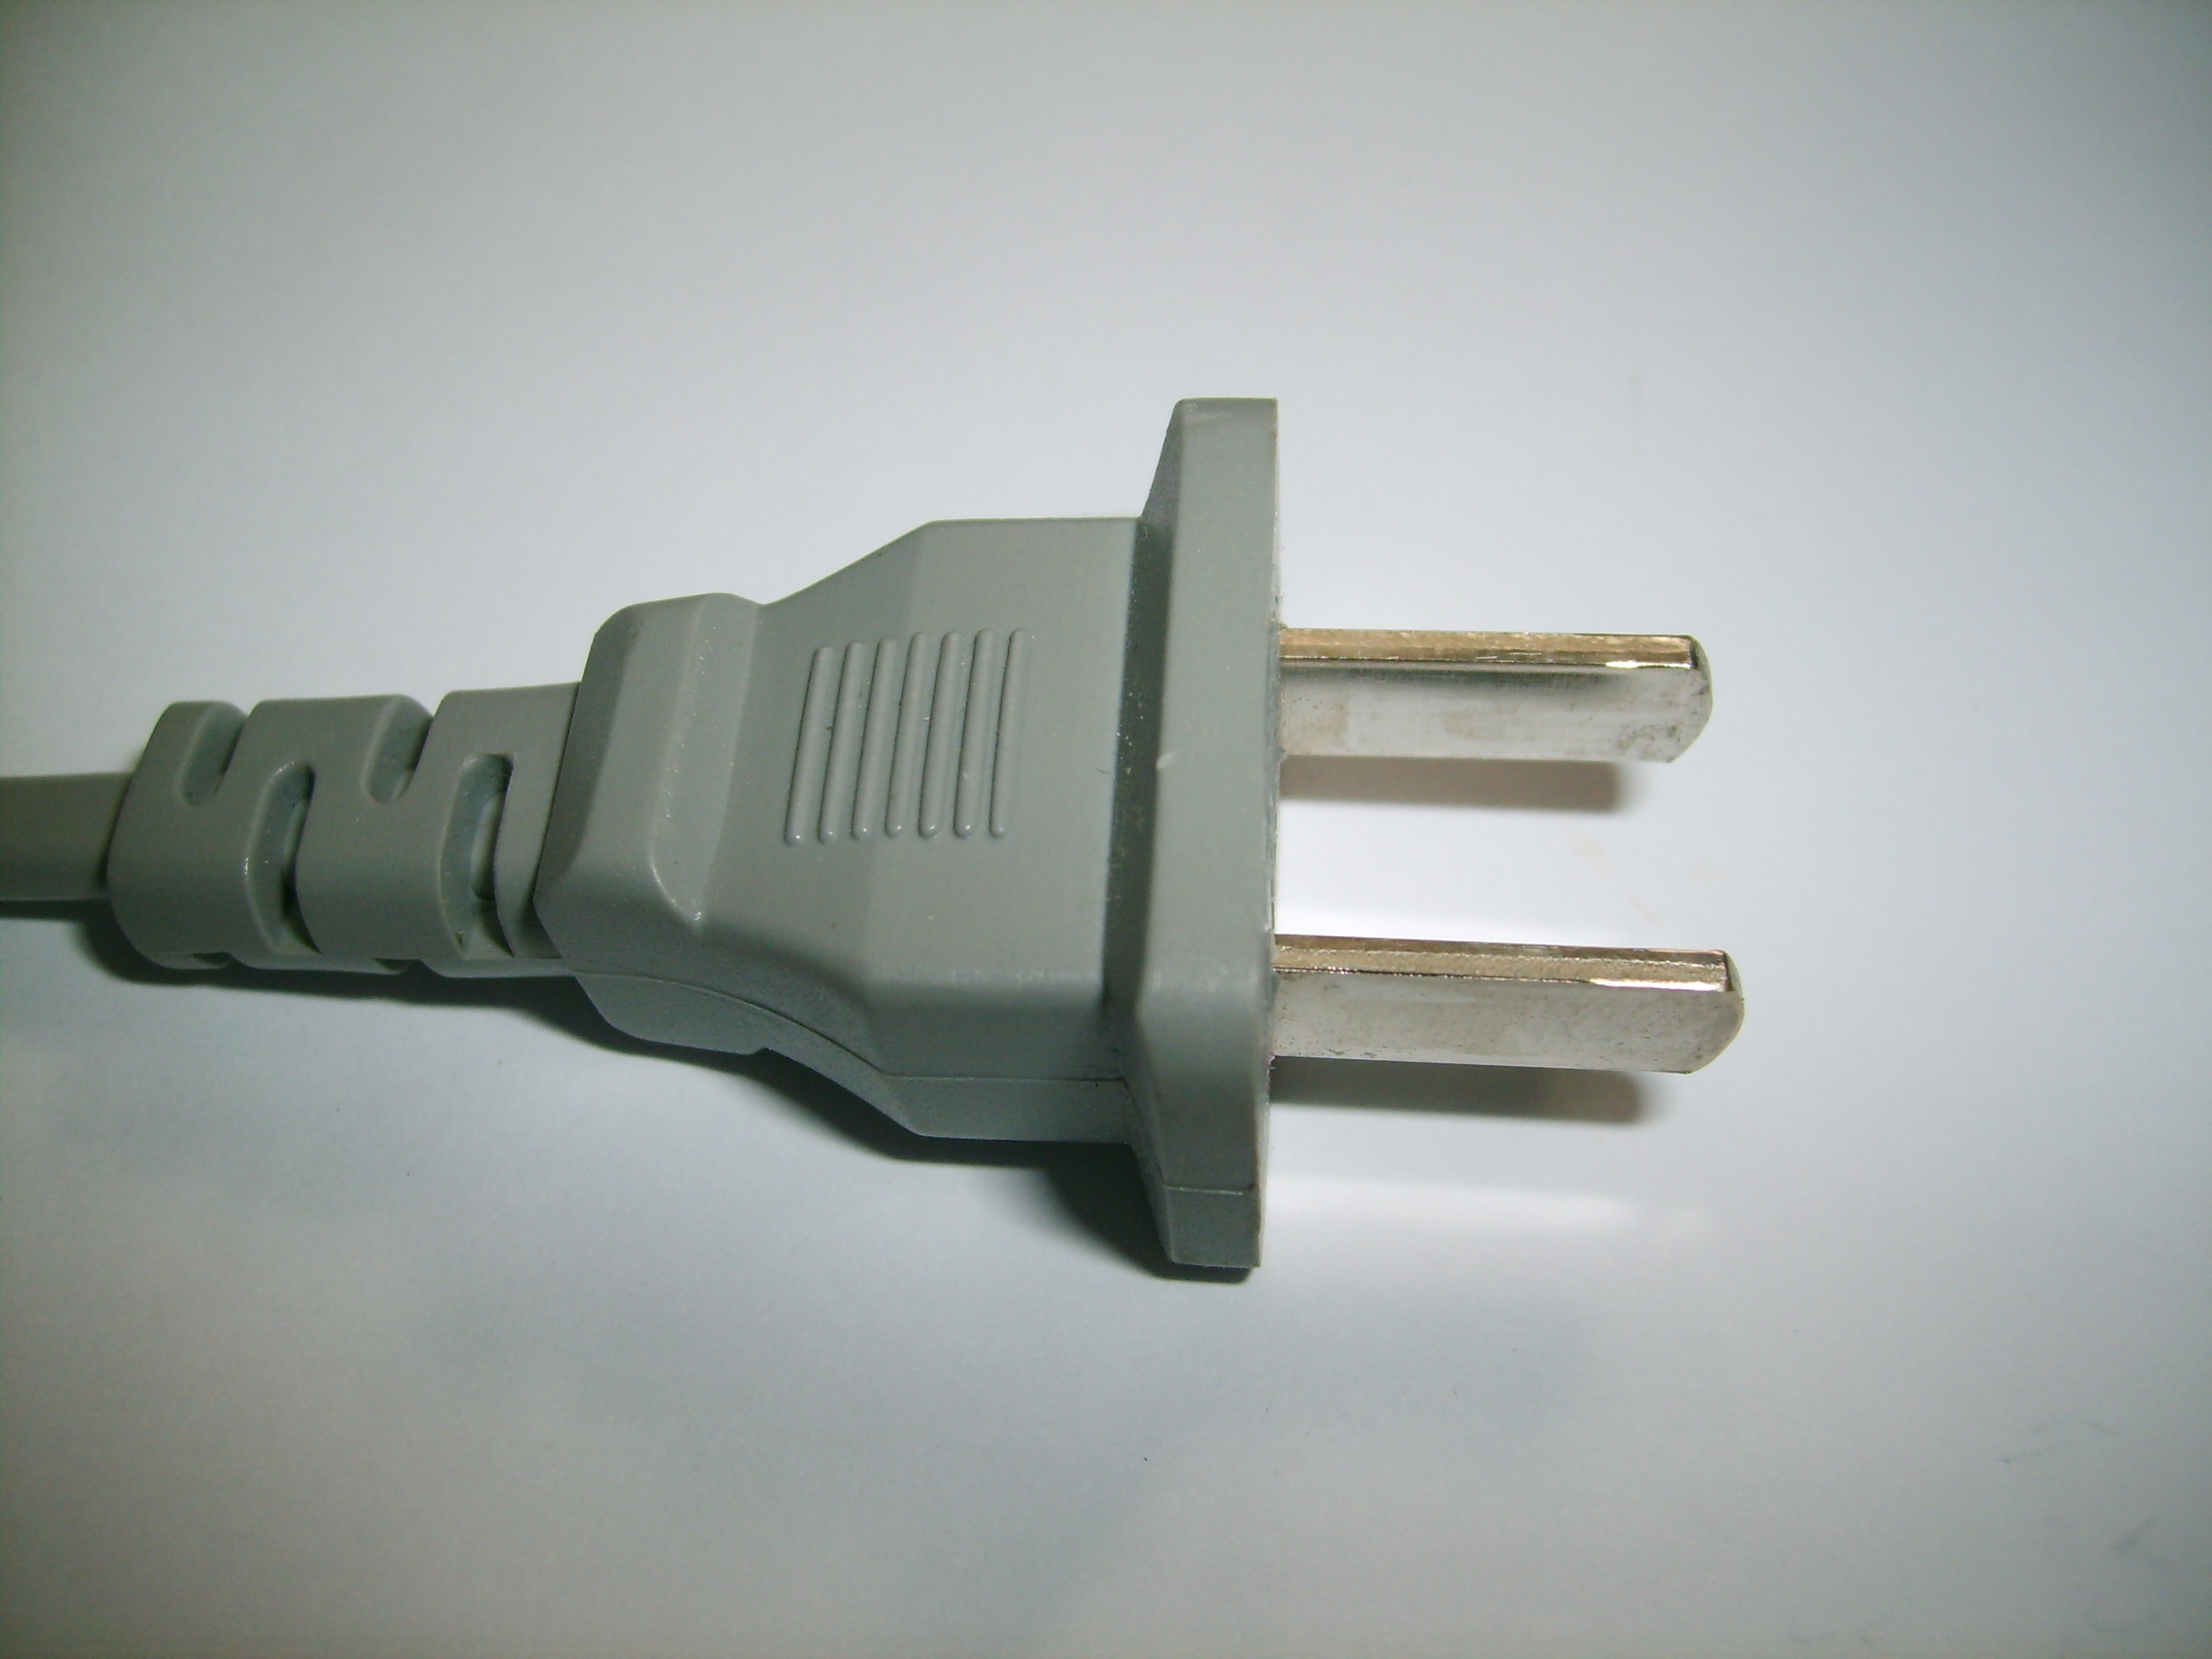 Ac Power Plugs And Sockets Using A Screw Or Plug Against On Wiring Socket South Africa Unpolarized Nema 115